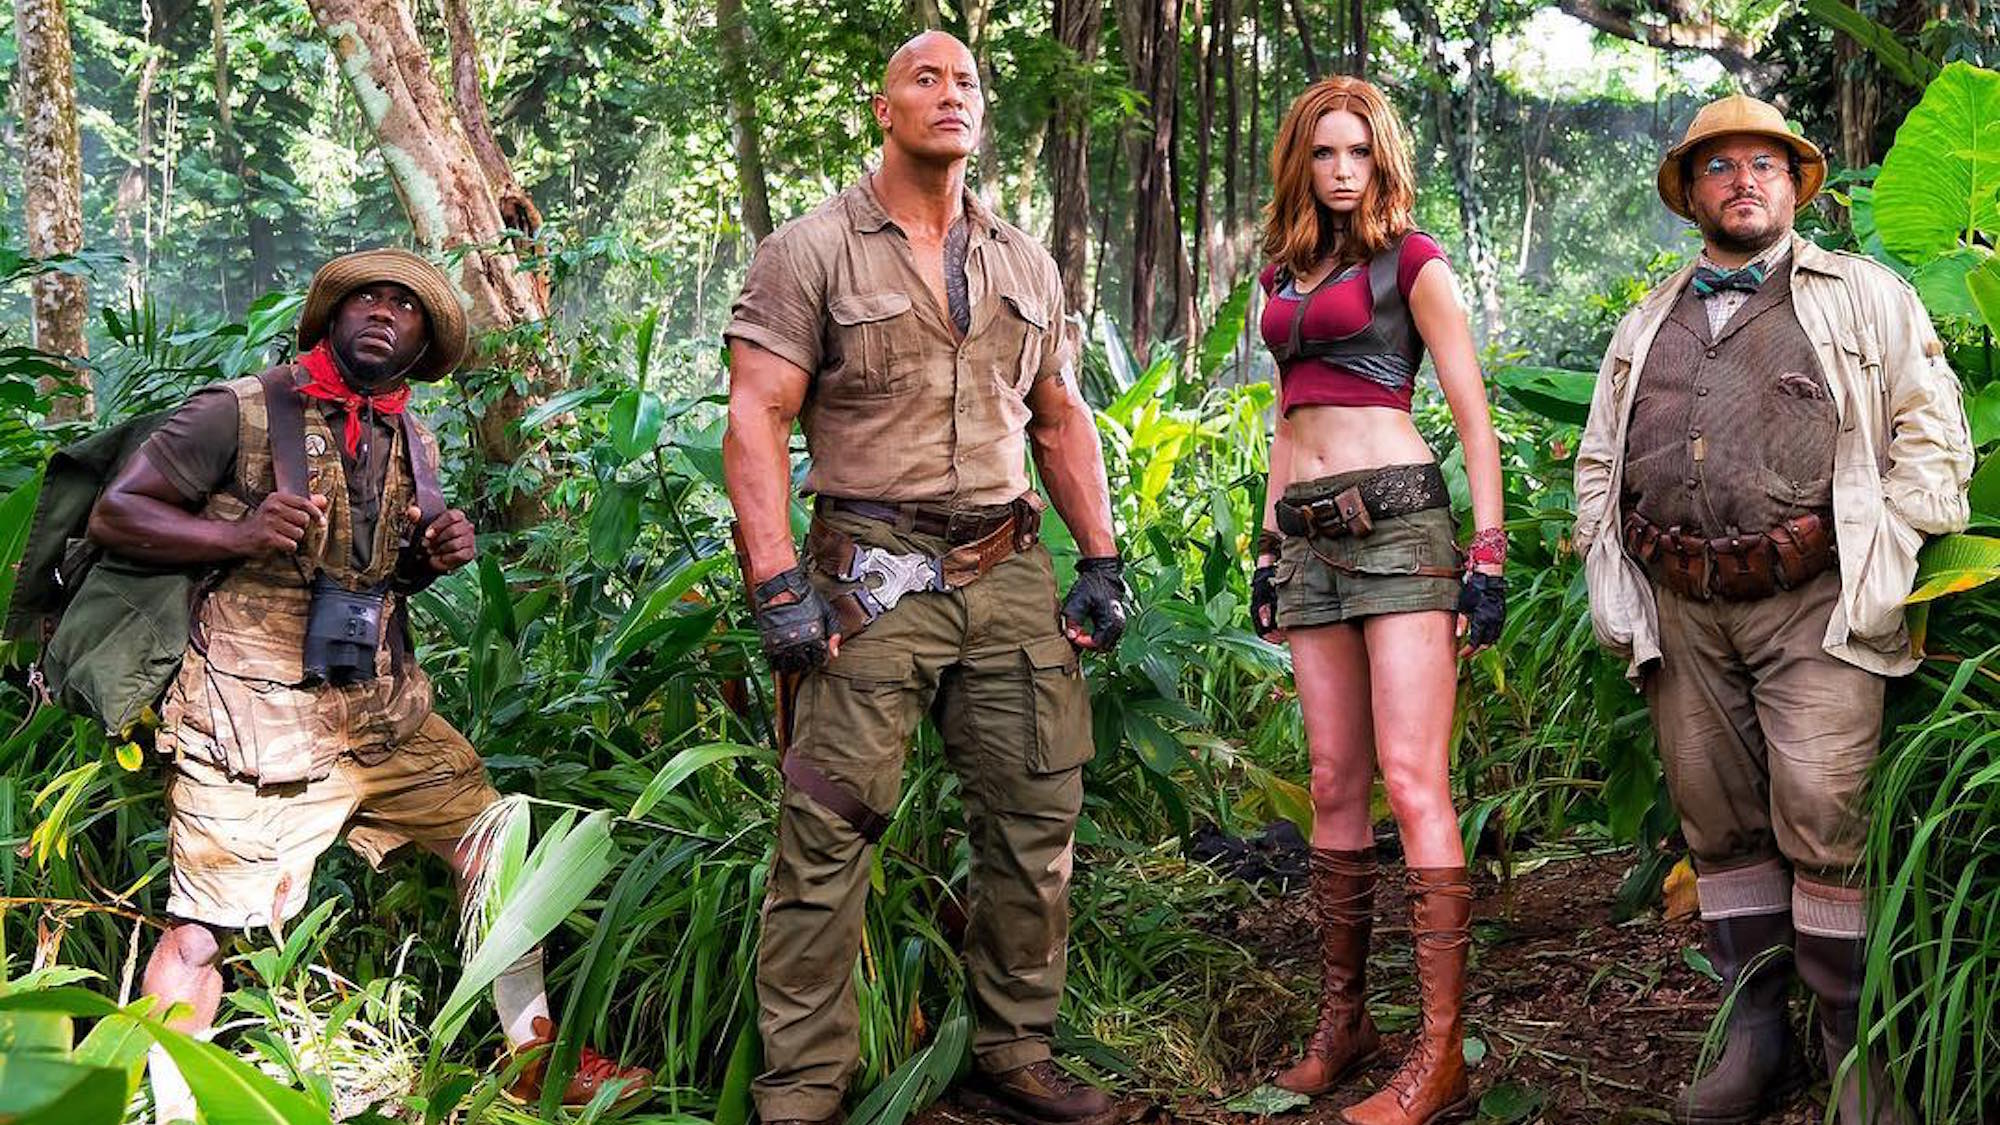 FIRST LOOK: Karen Gillan Joins Dwayne Johnson on the Set of 'Jumanji'